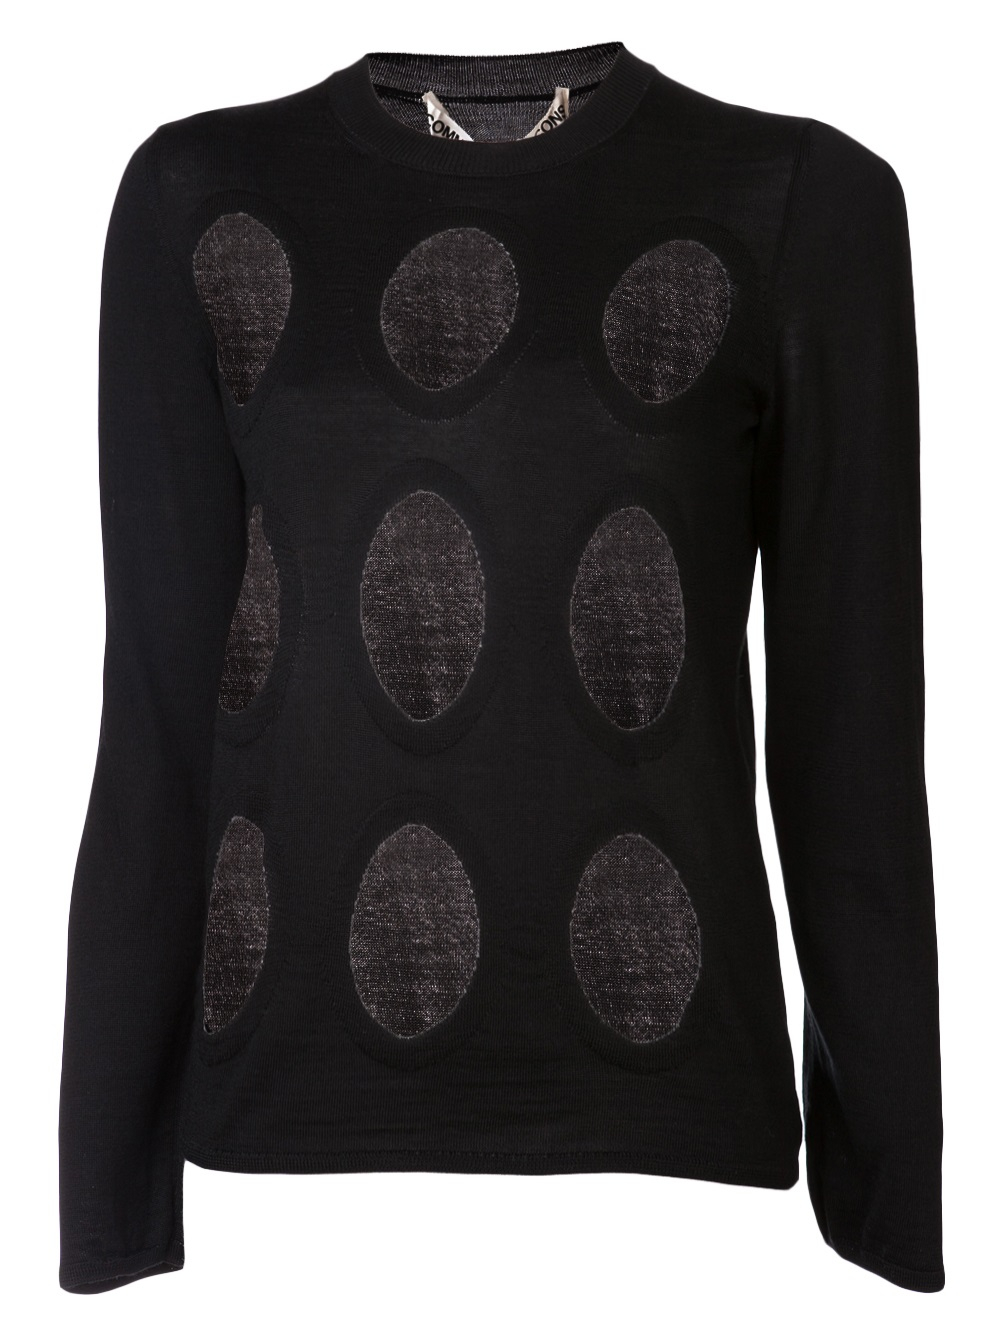 Comme des garçons Sheer Holes Sweater in Black | Lyst